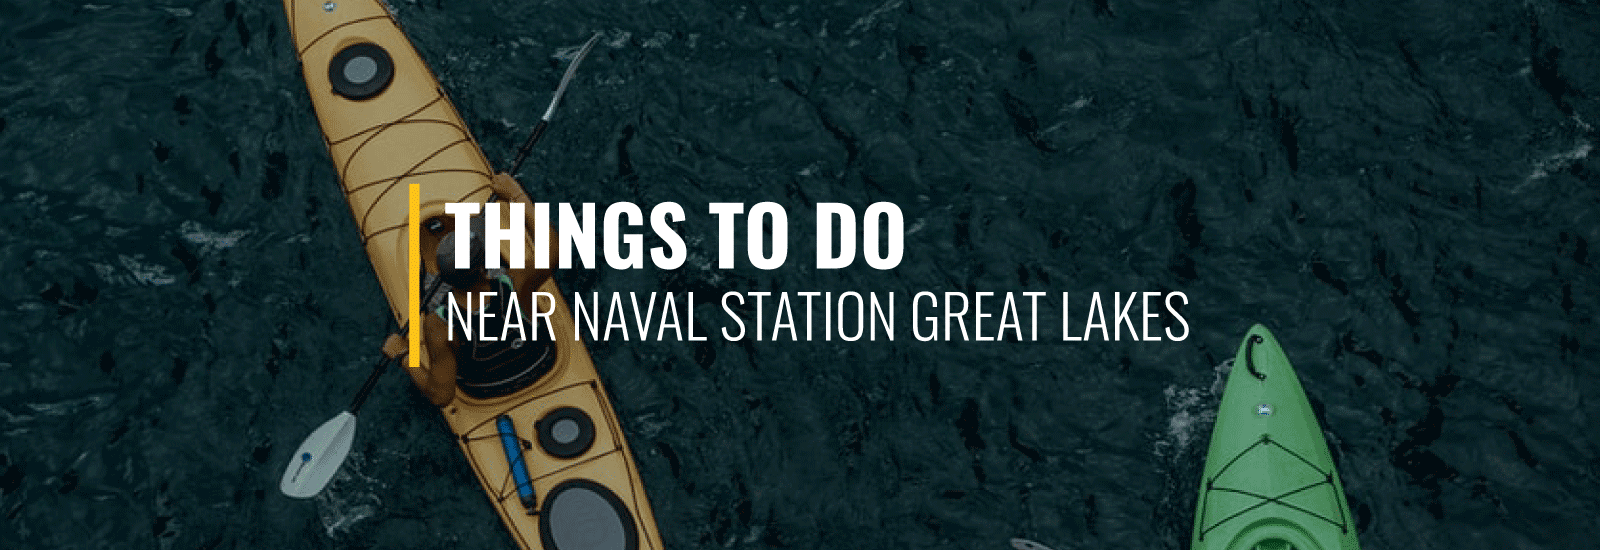 Naval Station Great Lakes Things To Do